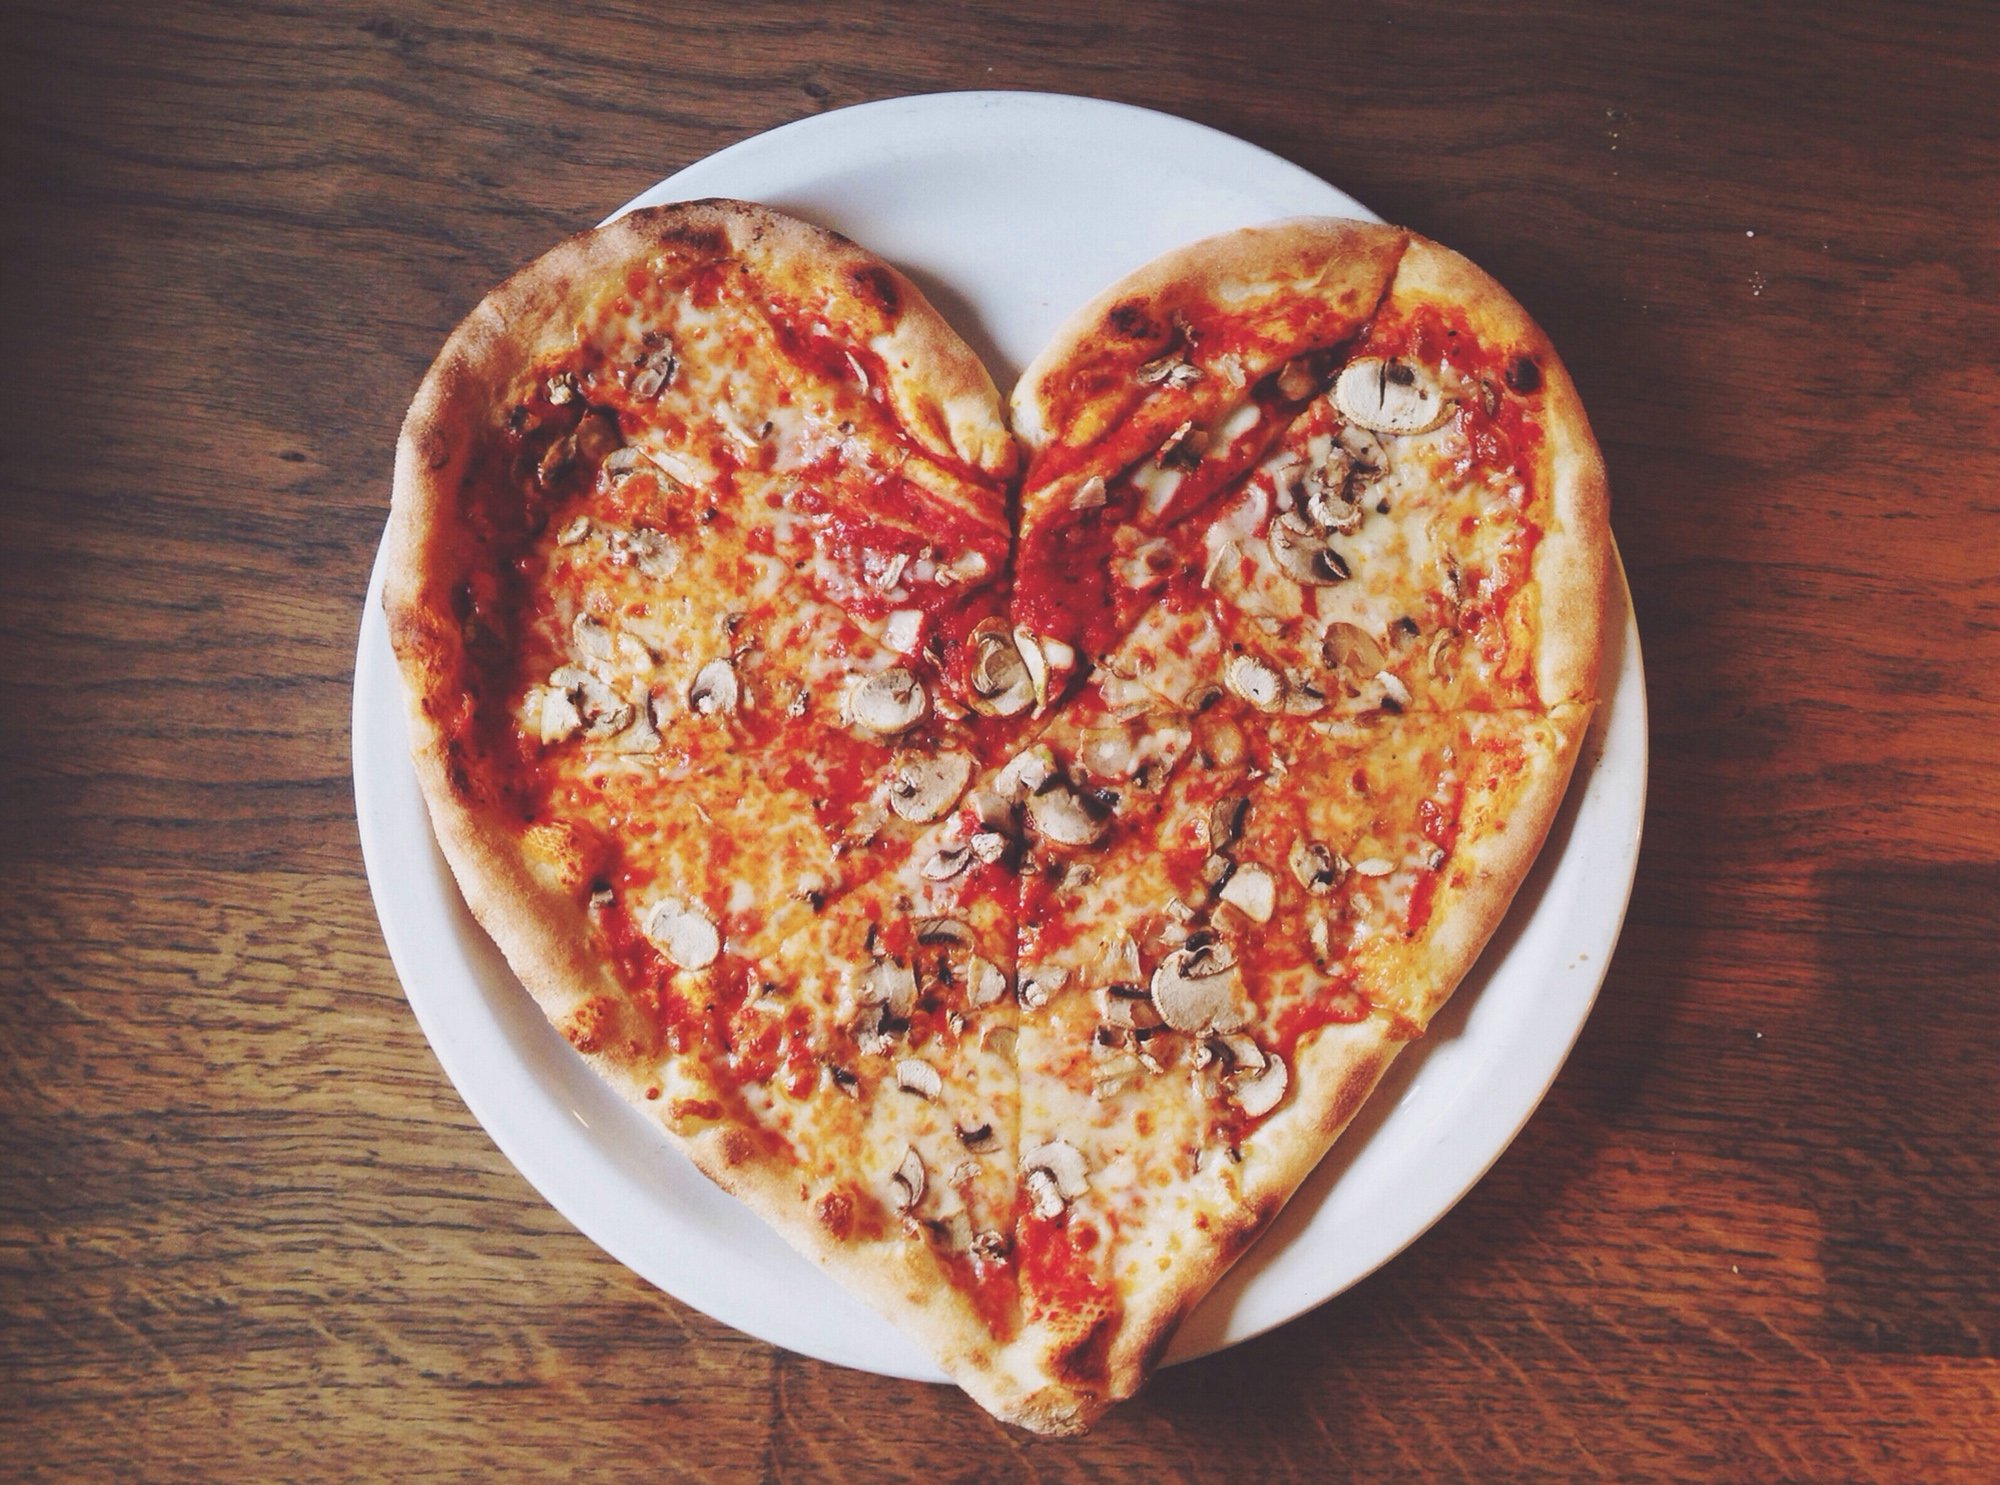 Love for pizza